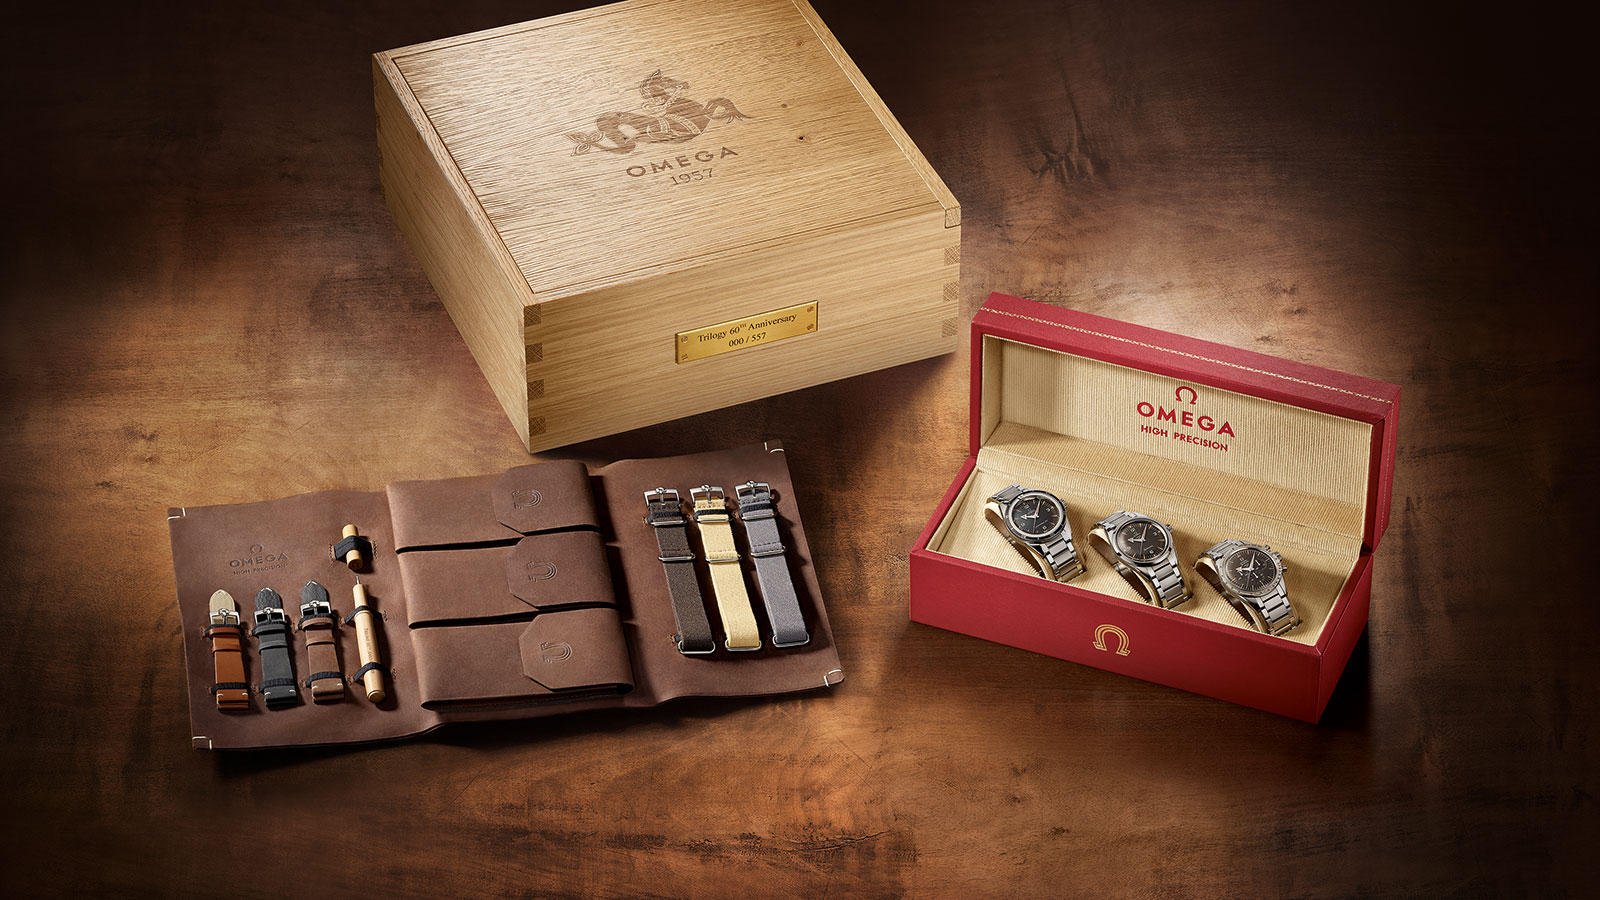 Omega 1957 Trilogy box set